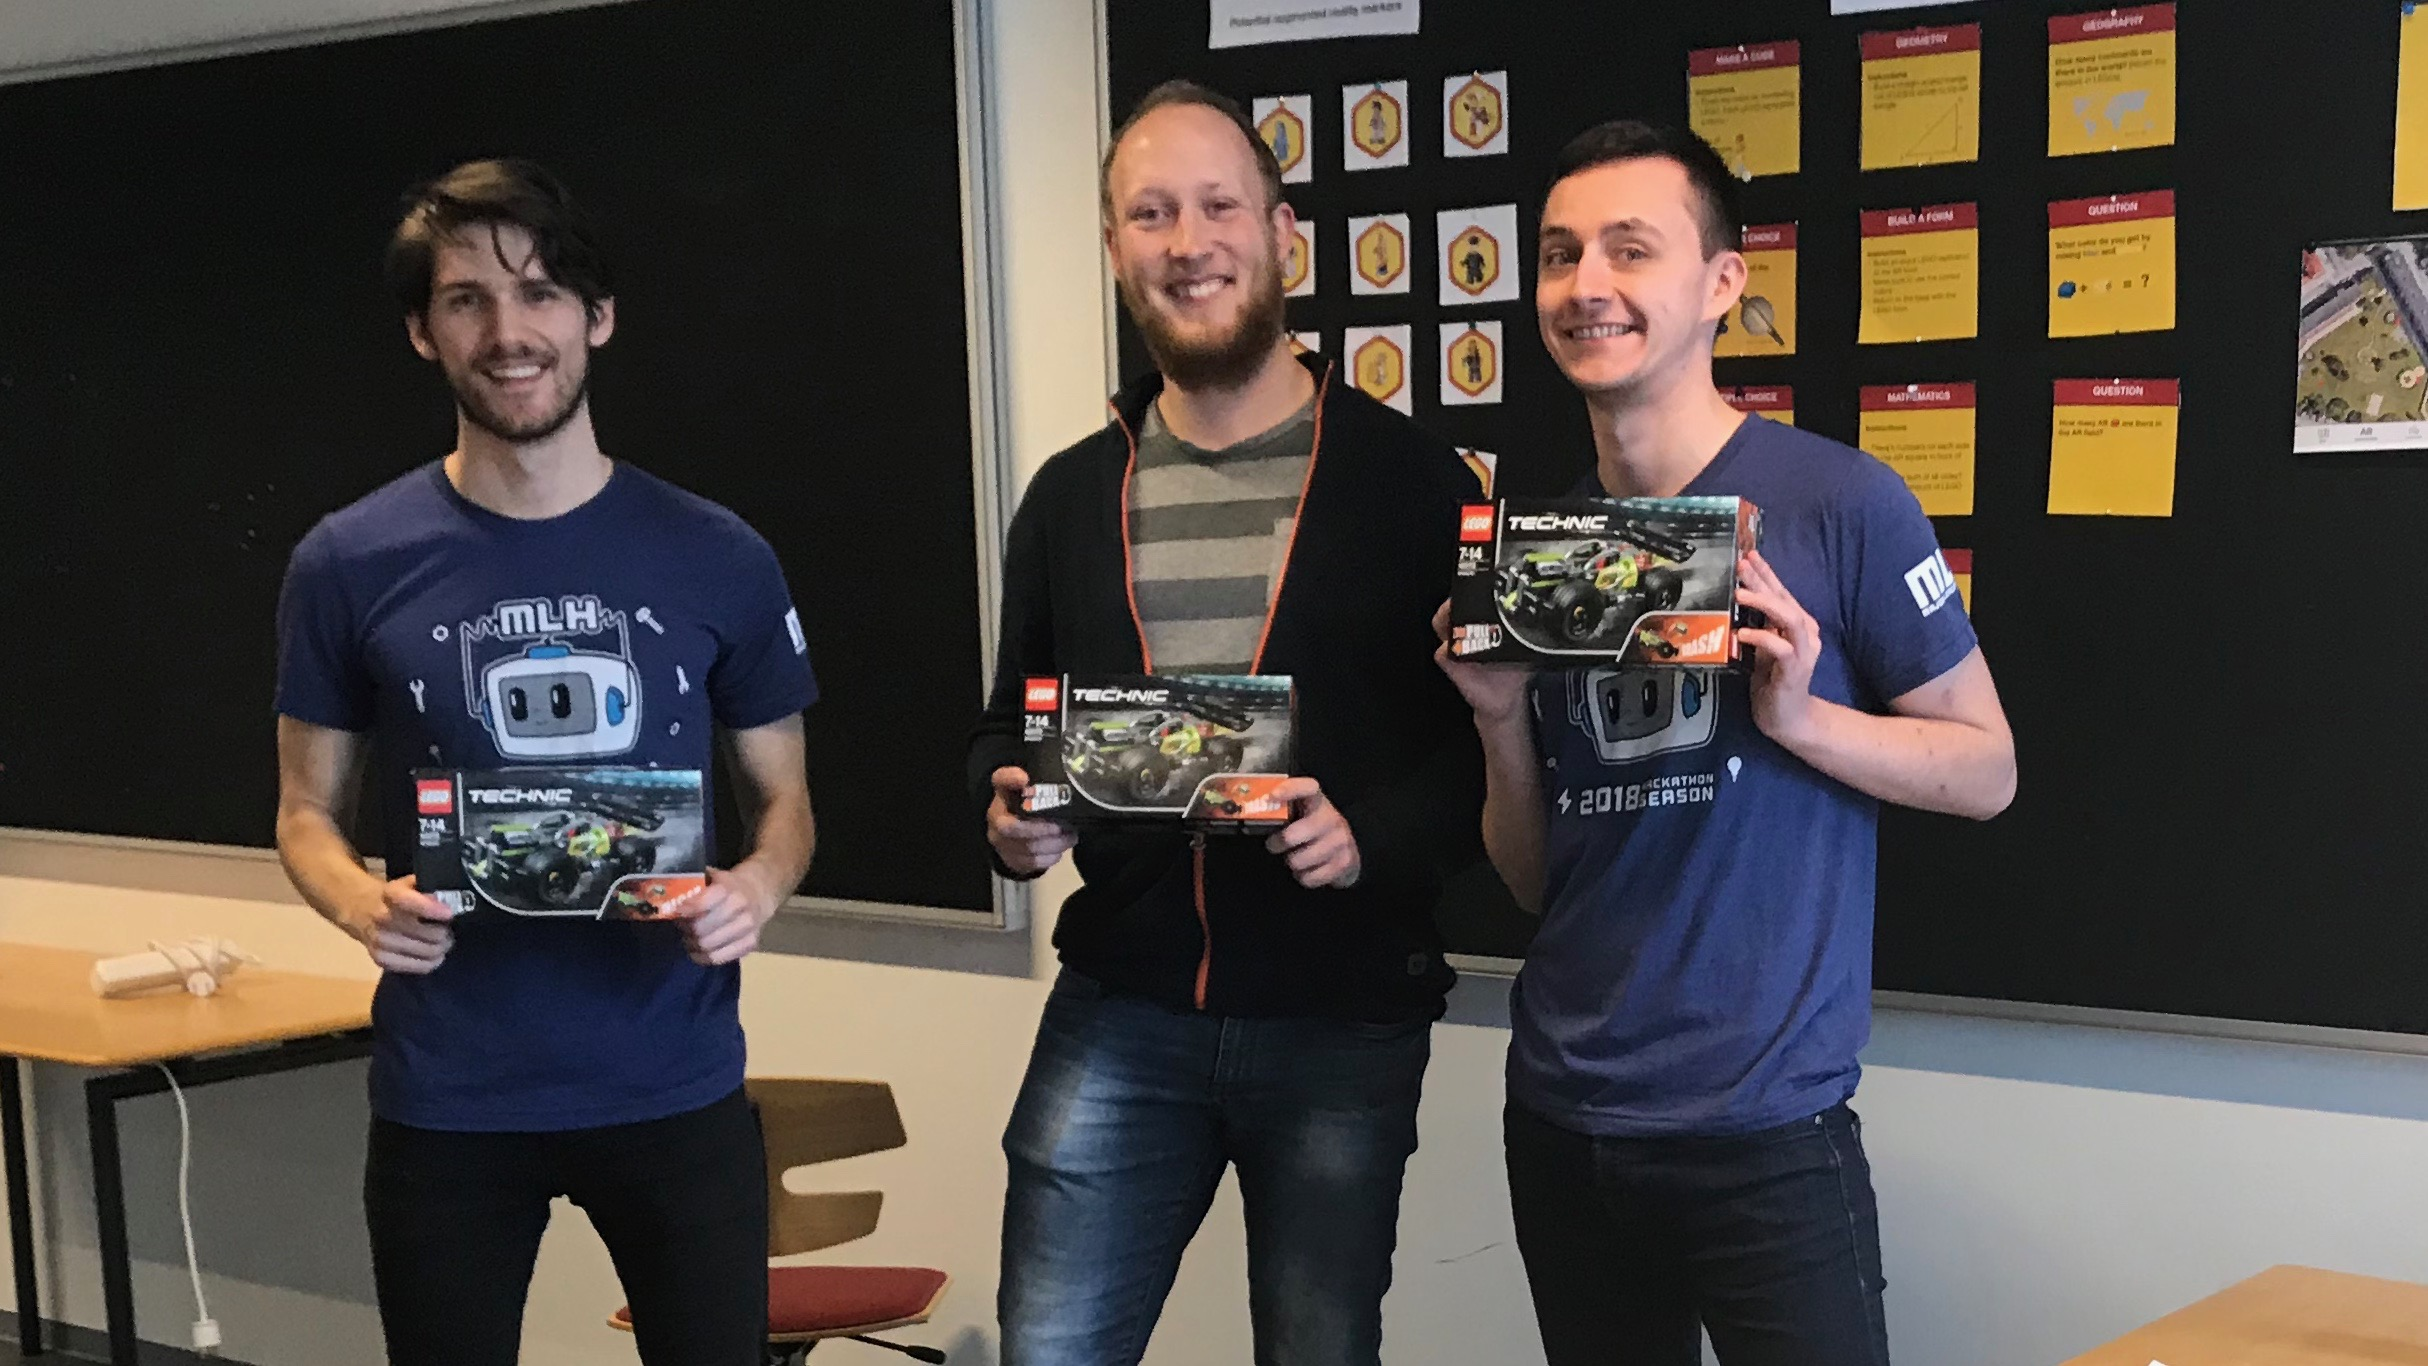 From left to right: Me, Nicolai Bonde (Electroengineer), Mikkel Jensby (IT & Product Development).